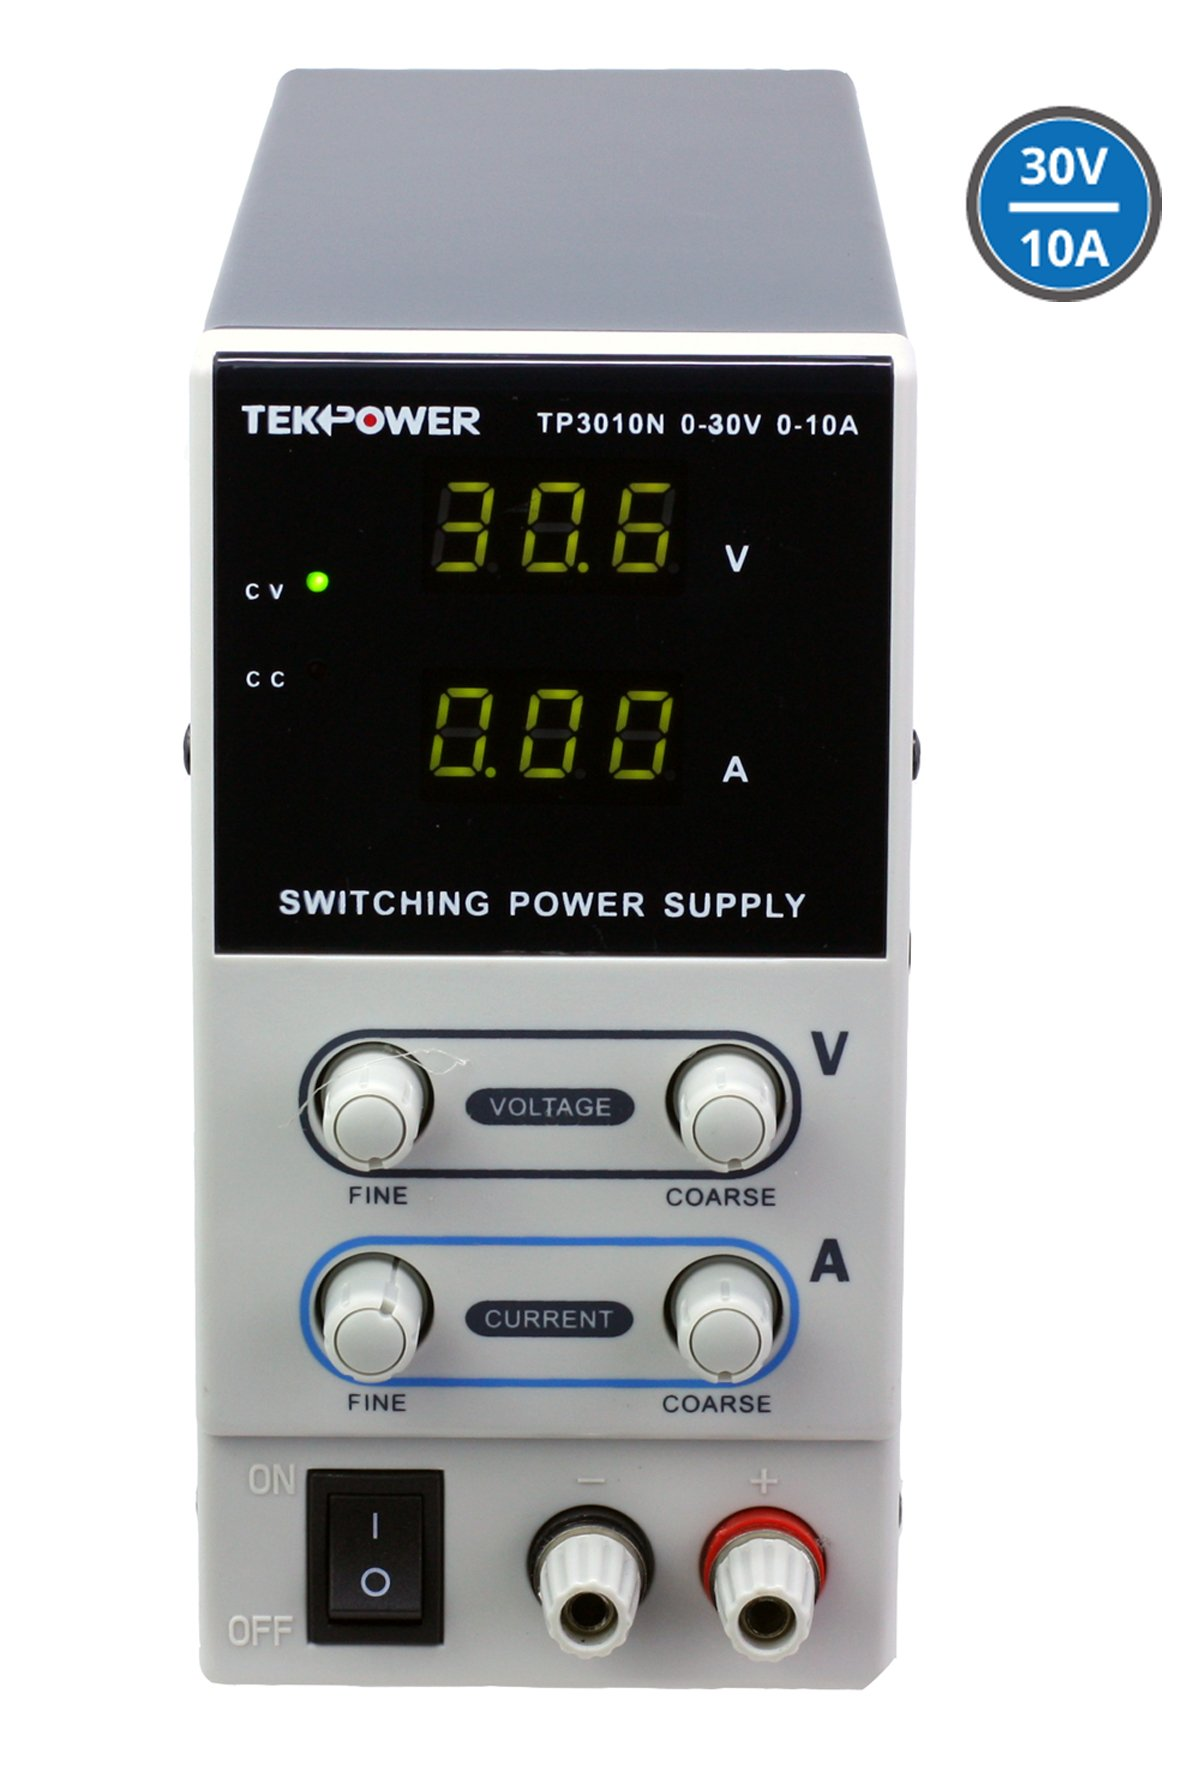 Tekpower TP3010N Regulated DC Variable Power Supply, 0-30V at 0-10A …